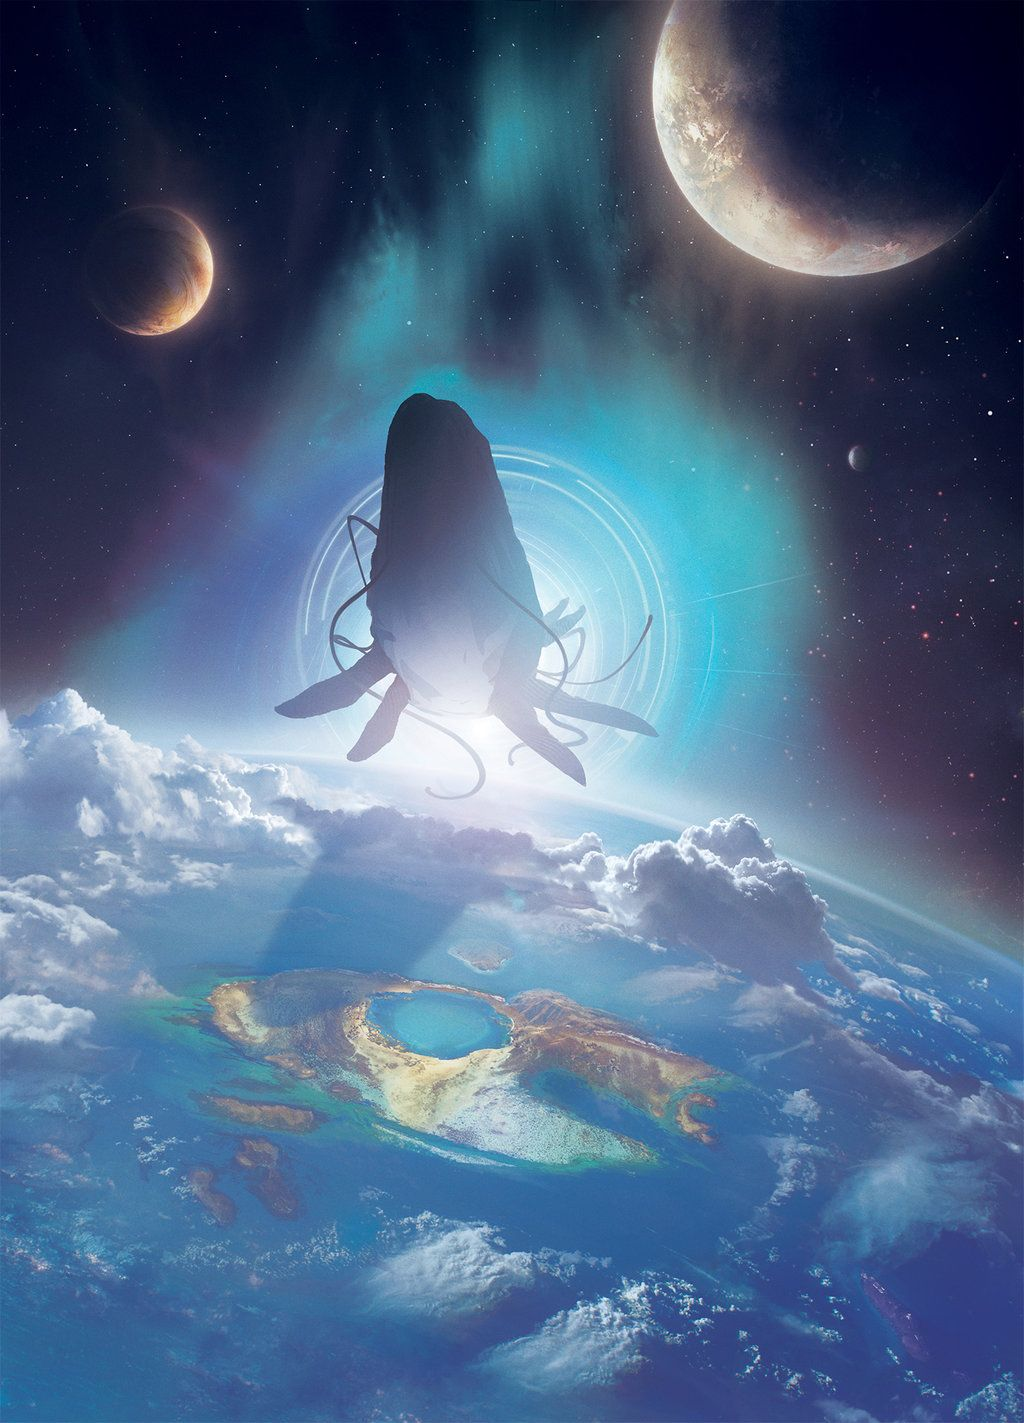 Book Cover Les Abimes d Autremer by Jessica-Rossier on DeviantArt